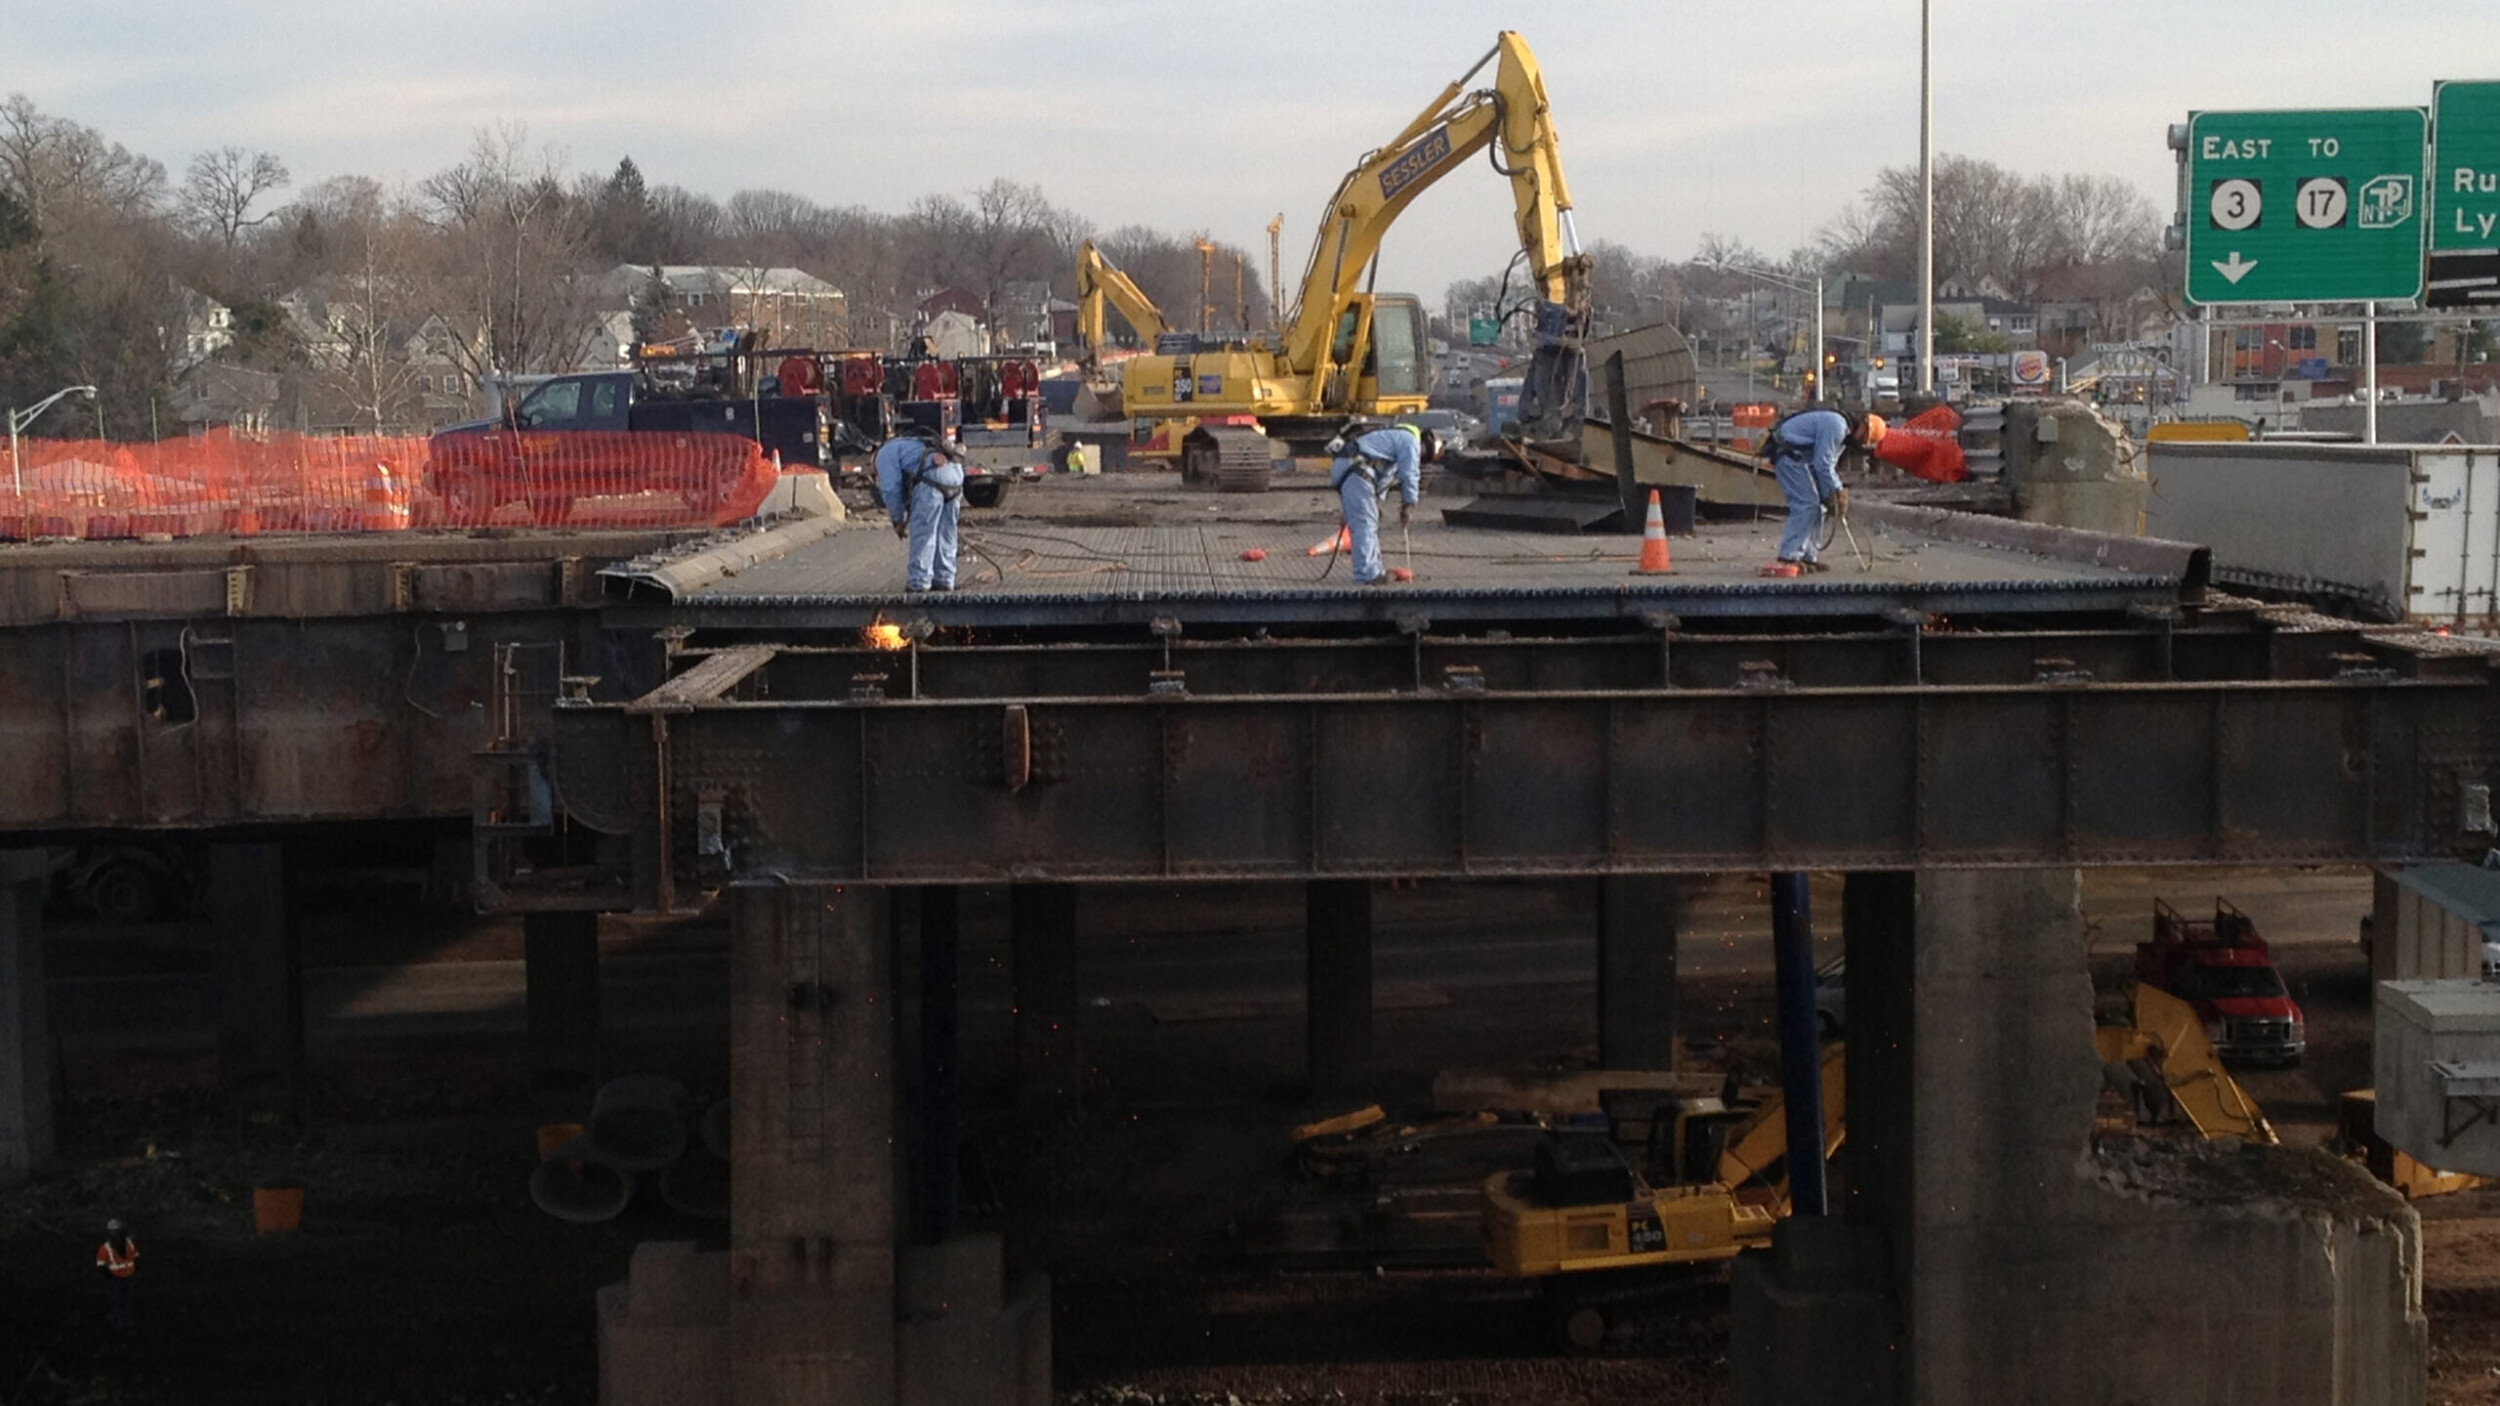 Demolition of Route 3 over the passaic